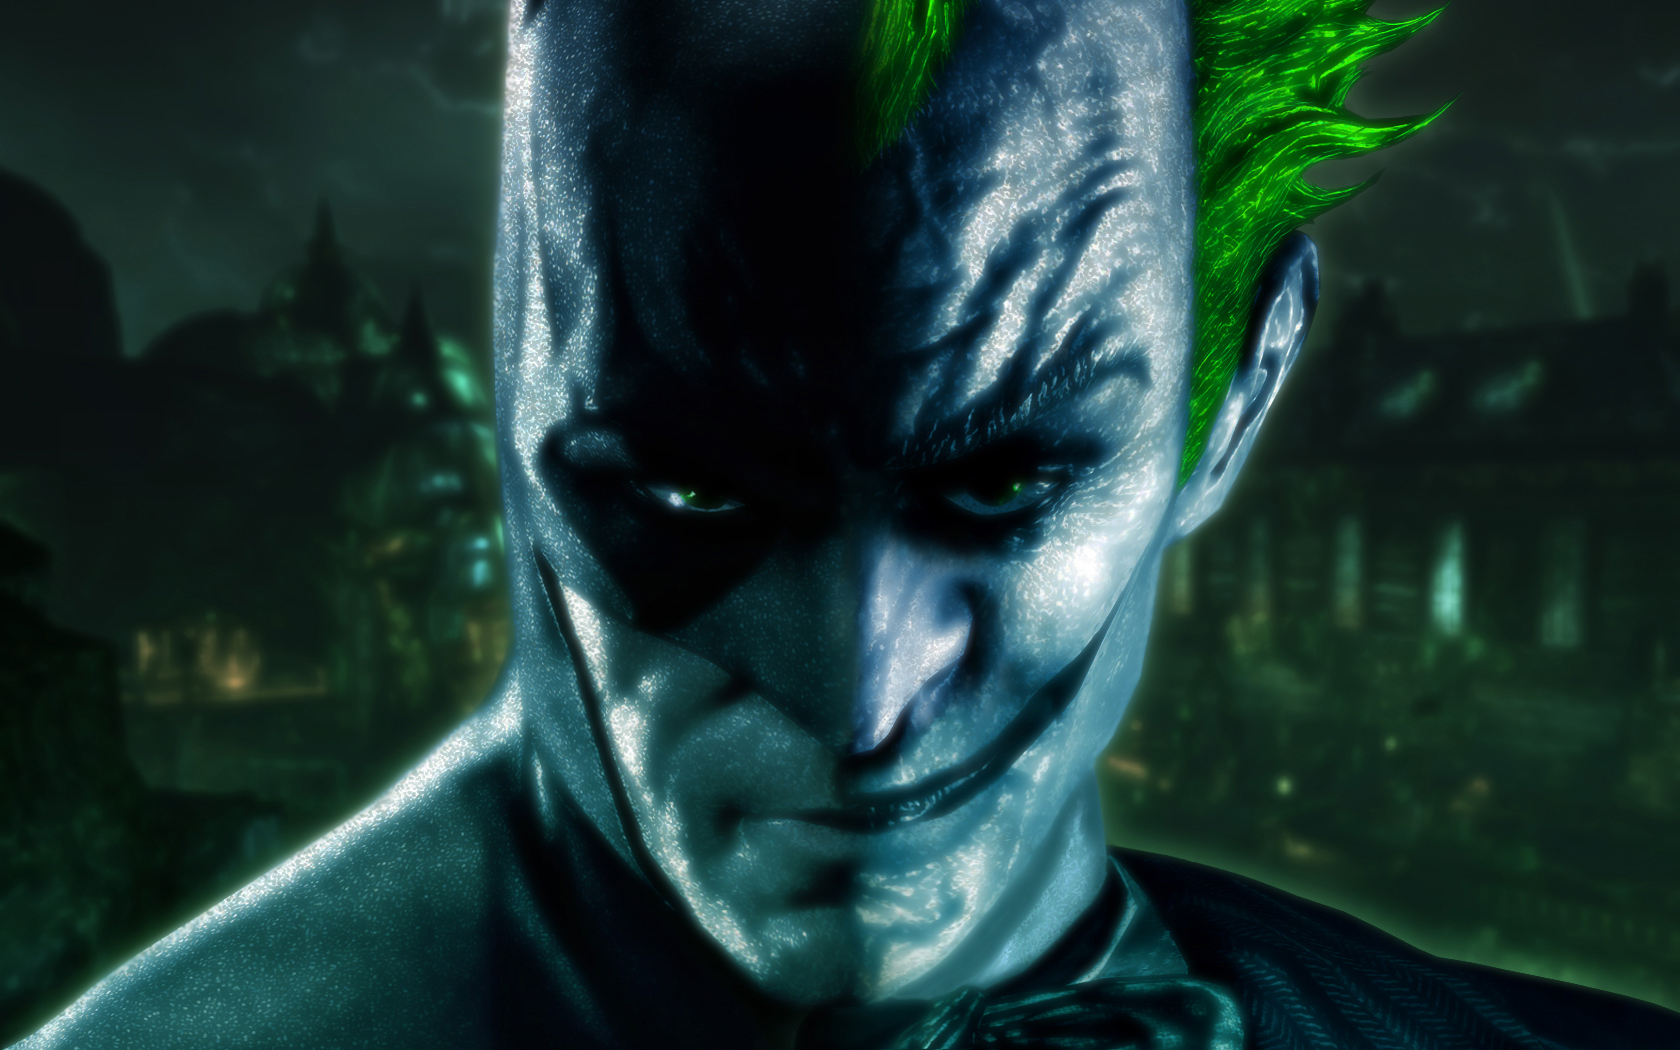 Michael Jackson Hd Wallpapers For Iphone 6 Batman Arkham City Wallpaper And Background Image